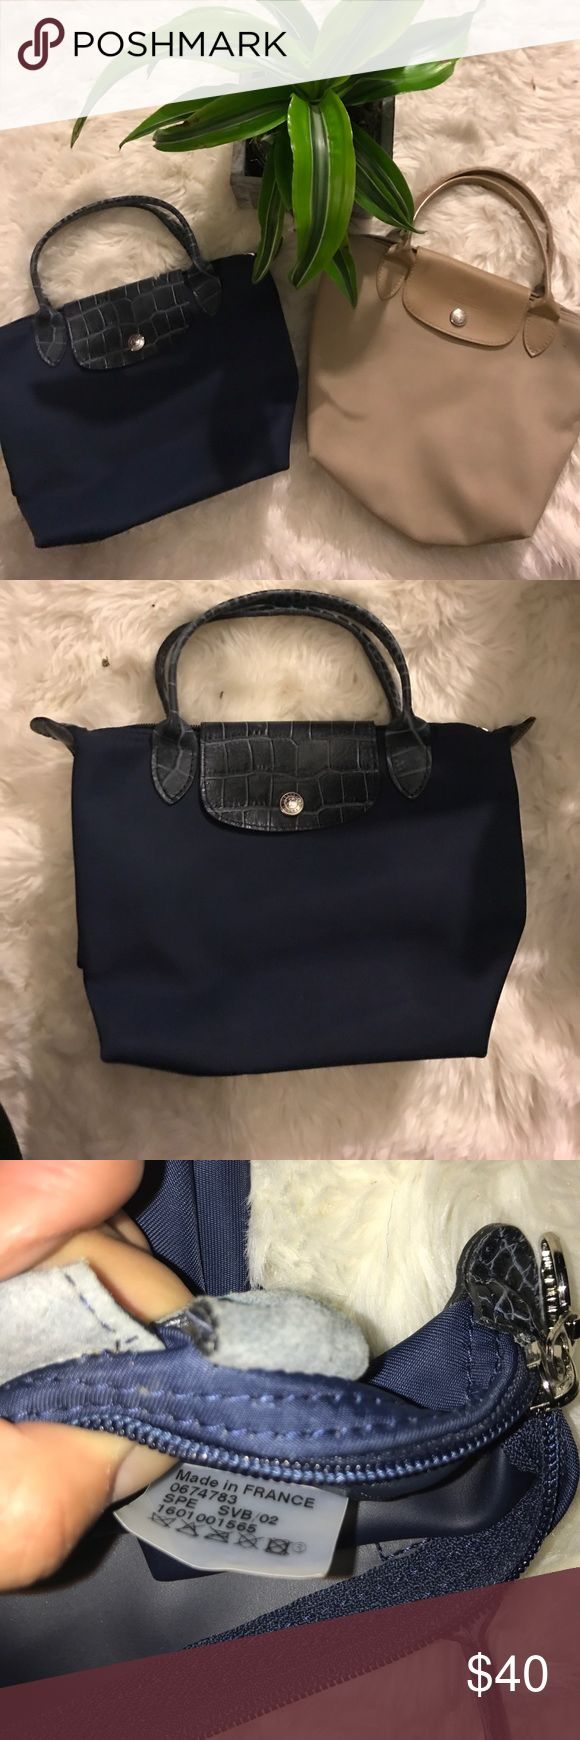 """Small Le Pliage Shoulder Tote: Longchamp Top zip closure with outer snap tab. Interior wall pocket. Water-resistant lining. Folds flat for storage. Nylon with leather trim. * same price for both   minor pen mark on print blue  - measurements : LENGTH 8""""  WIDTH 9.5""""  DEPTH  4.5"""" STRAP DROP 4.5"""" 🌸 Want to make me a reasonable offer? 👇🏽 Use the offer button, and we can negotiate a price.  💌 I'll send you a private exclusive offer  🔴 Means SALE! SALE! SALE 👑repeat shoppers! Shop with me…"""